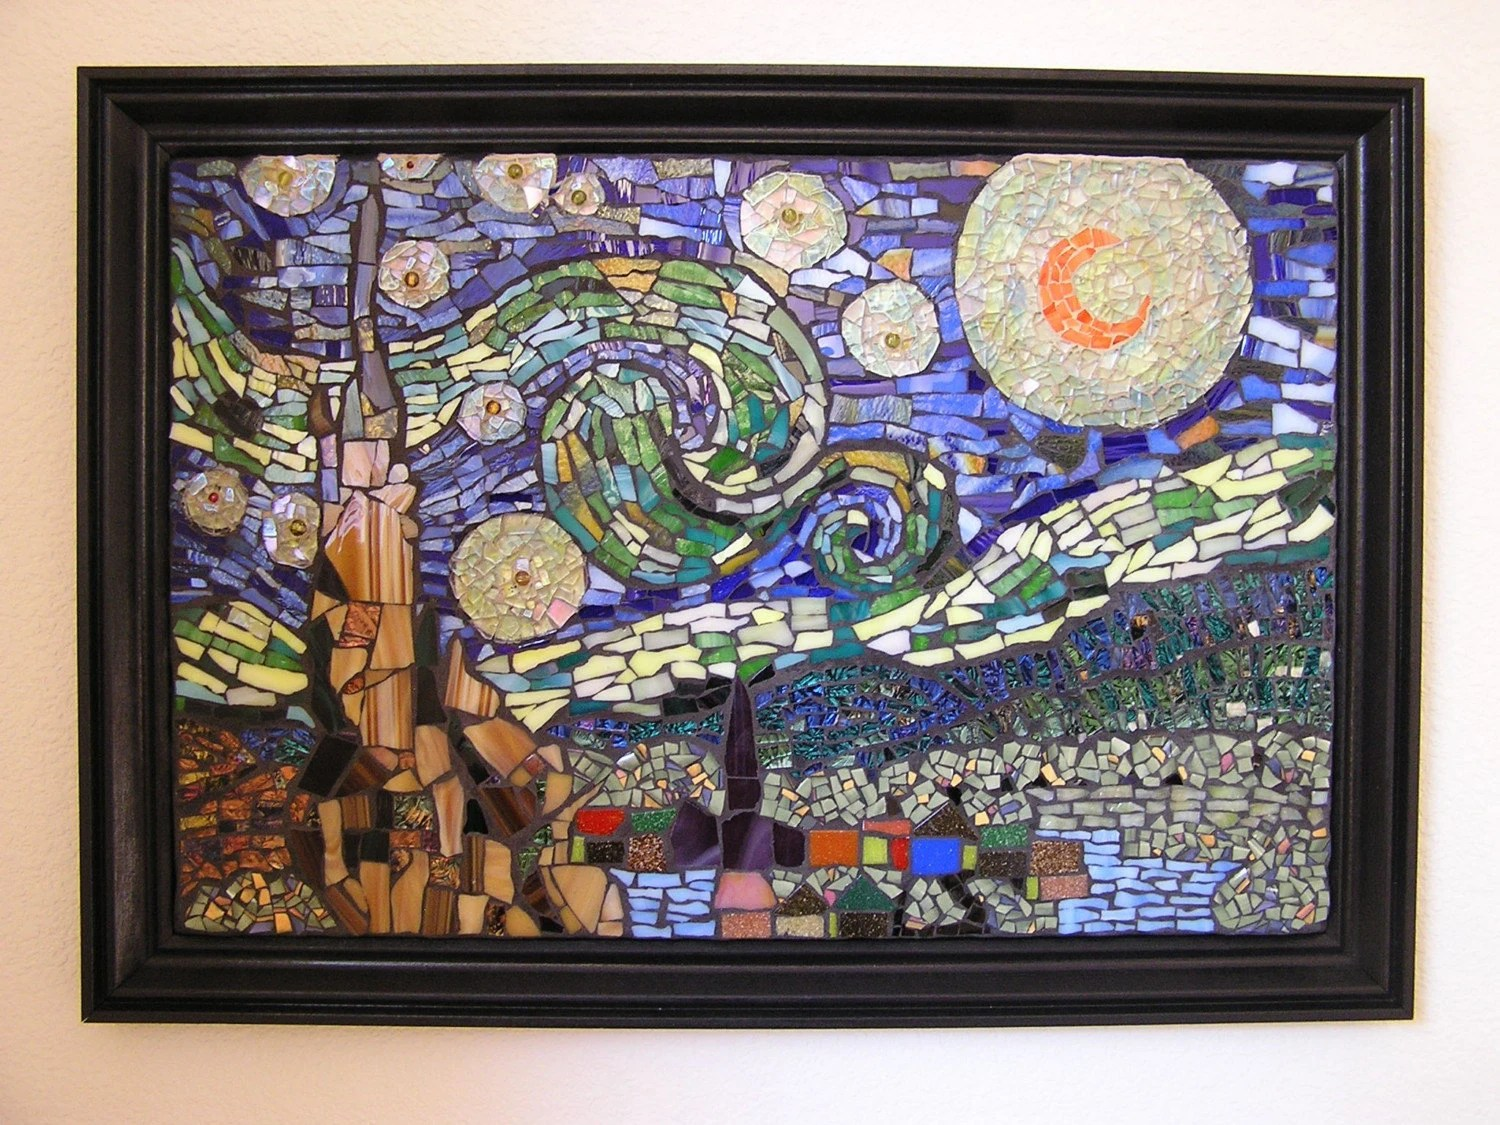 Items similar to Mosaic Art Wall Decor Van Gogh's Starry